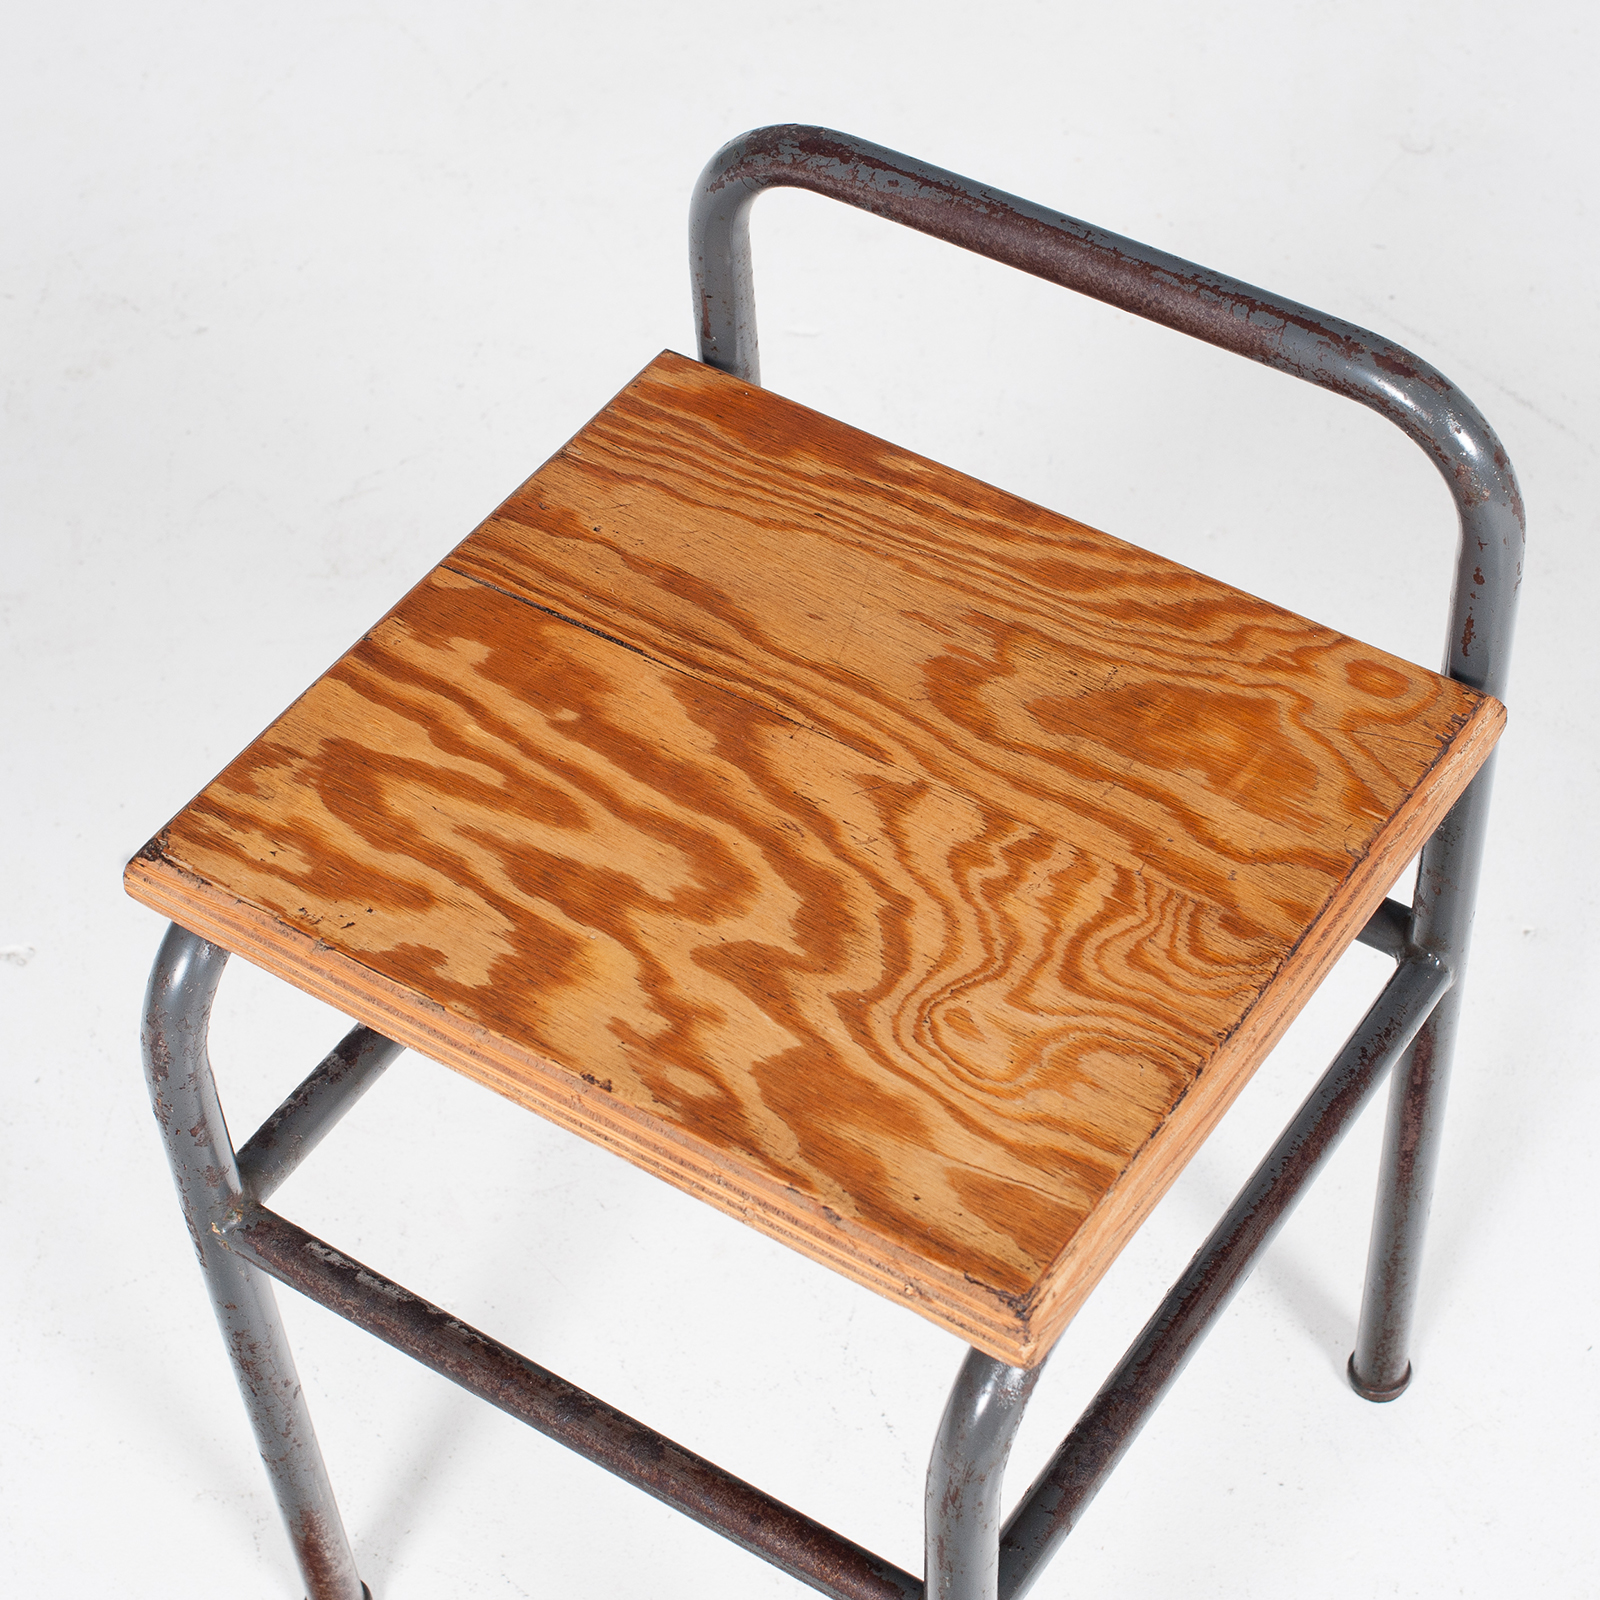 Industrial Stool With Timber Seat, Belgium6